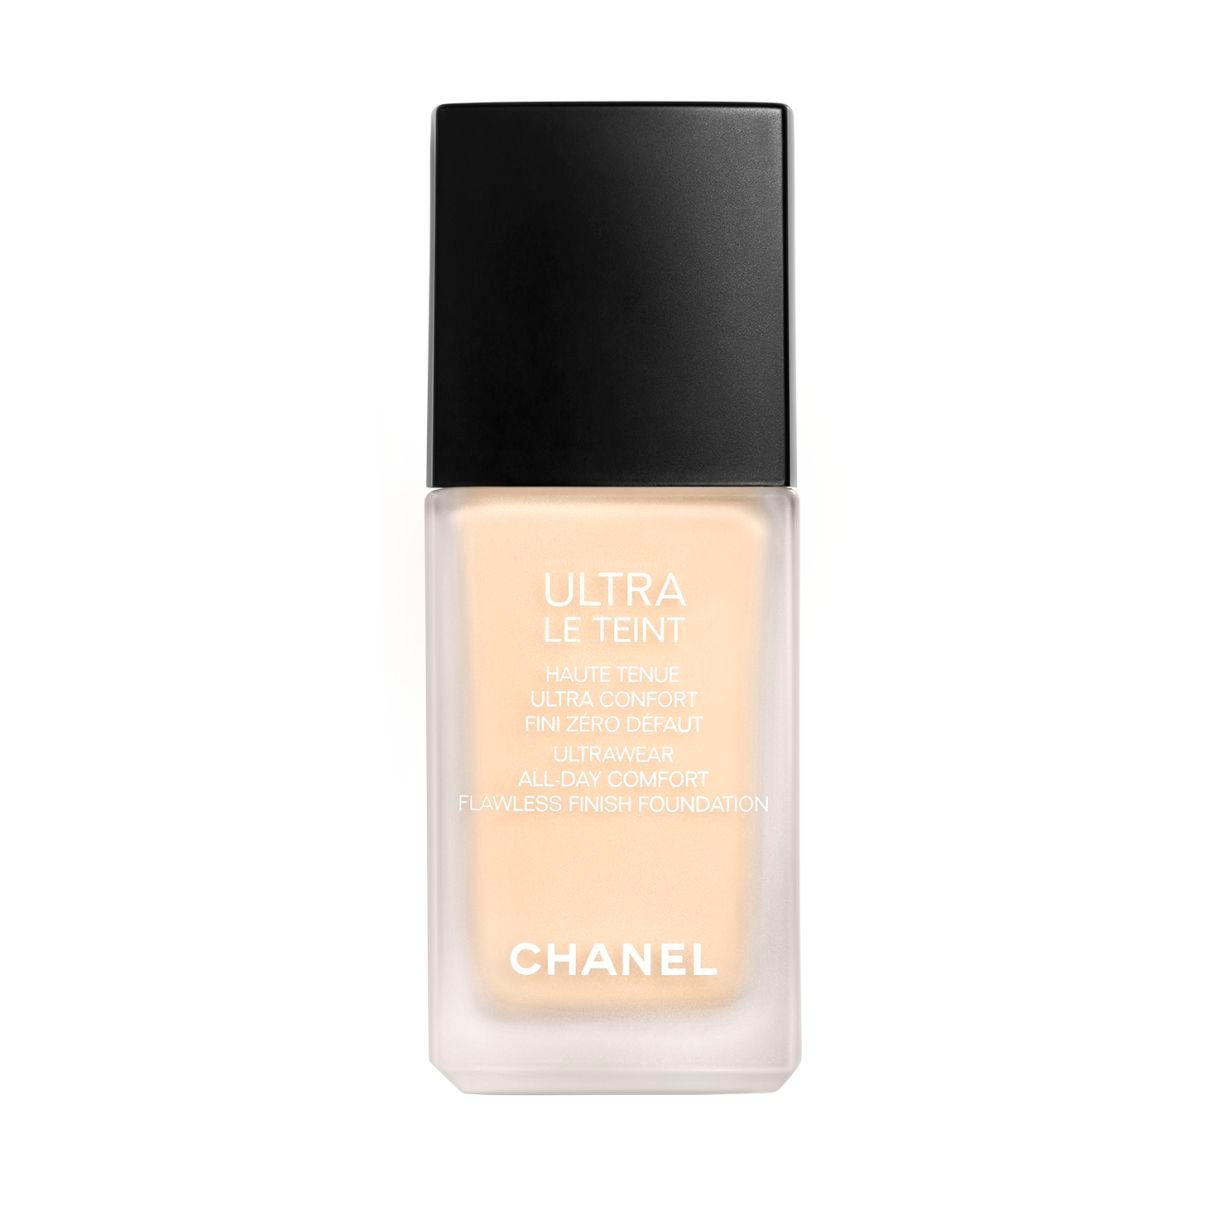 ULTRA LE TEINT ULTRAWEAR - ALL-DAY COMFORT - FLAWLESS FINISH FOUNDATION BD01 - BEIGE DORÉ 01